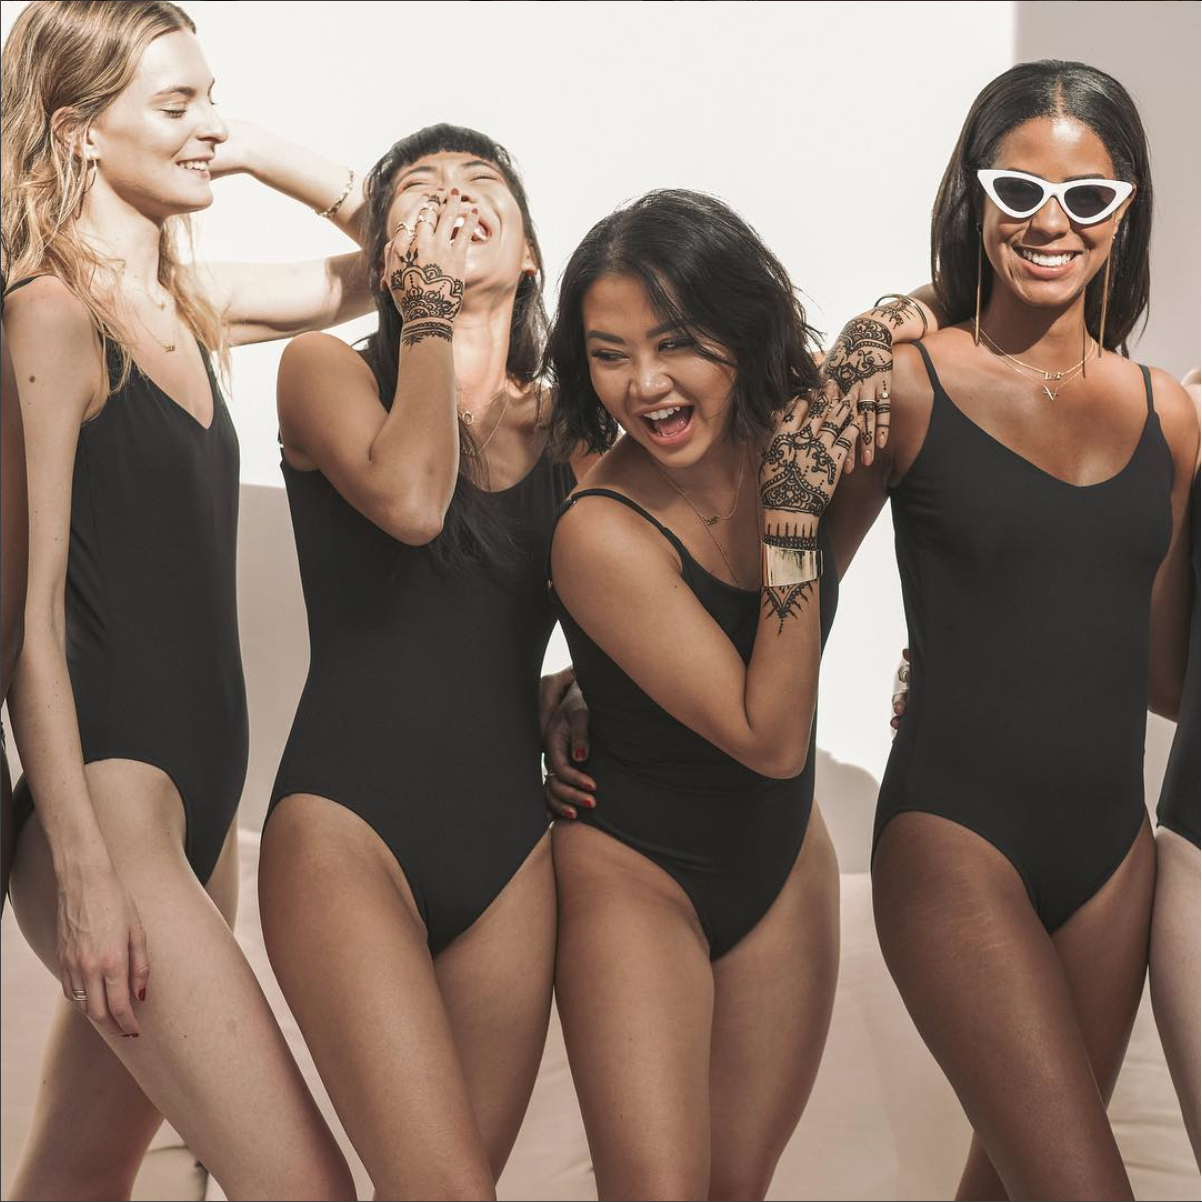 SUMMERSALT    |  Summersalt creates designer swimwear that fits your body and your budget. They also promote sustainability using recycled textiles for their products.